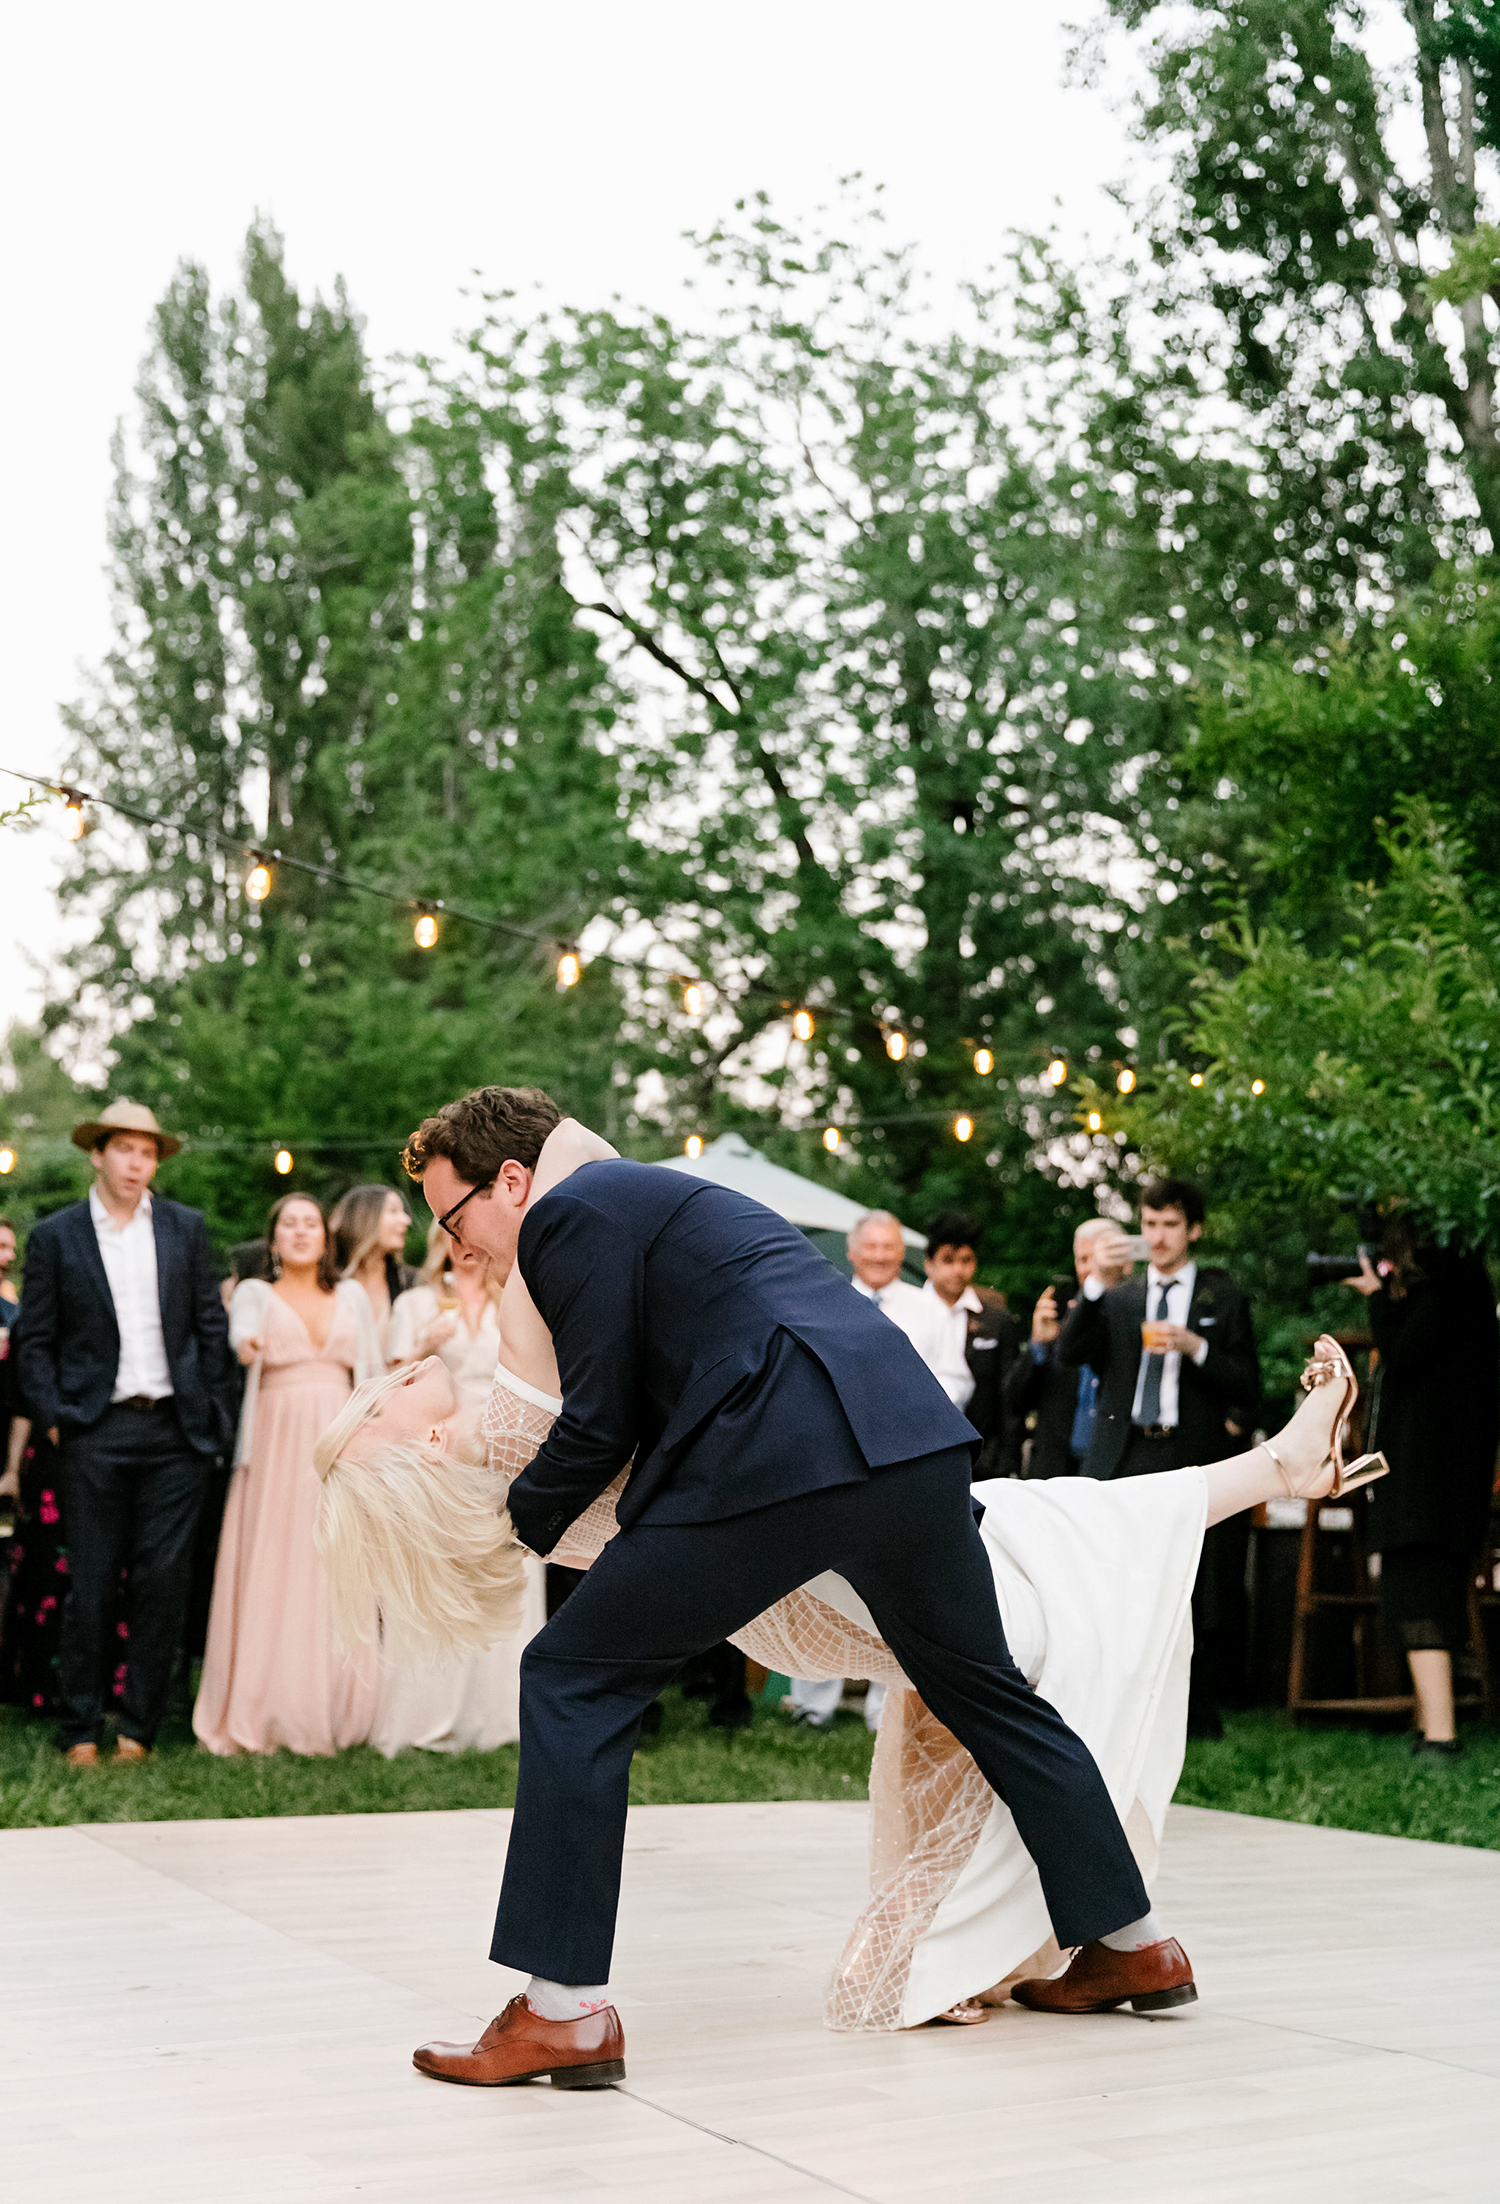 The Top 3 Reasons Why Couples Avoid First Dance Lessons—And Why They Shouldn't Stop You